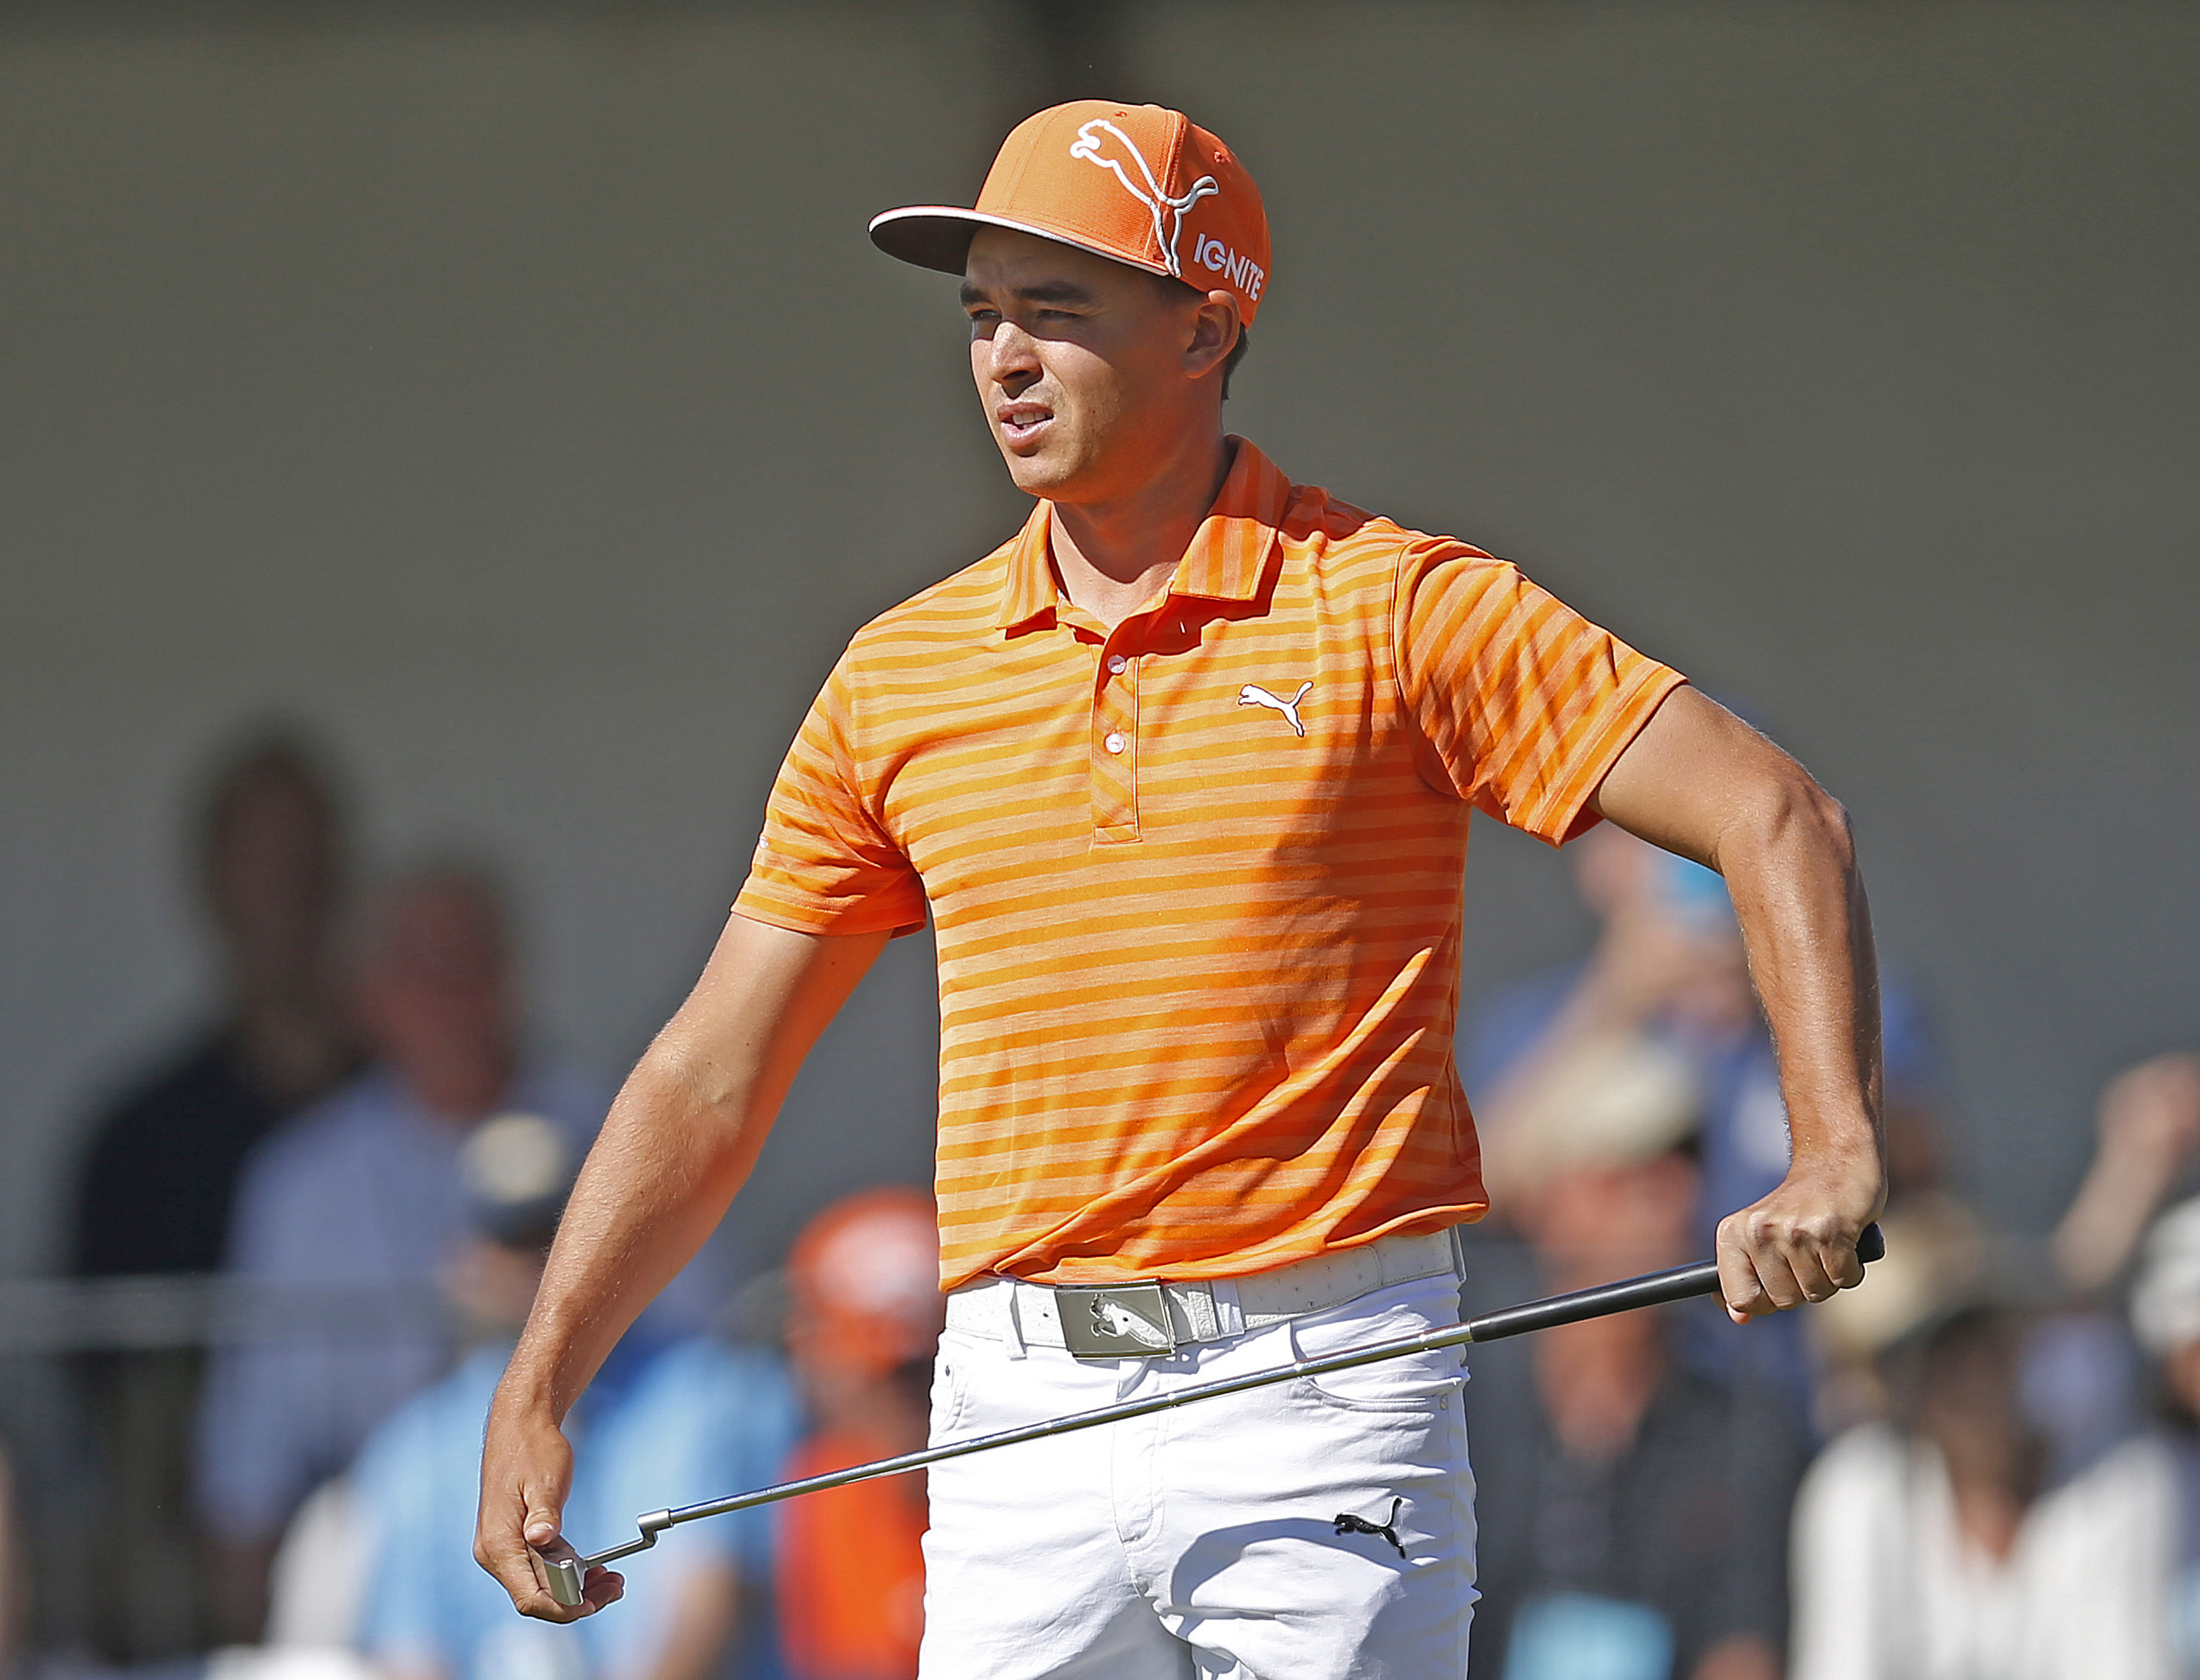 Rickie Fowler reacts after missing a birdie putt on the fourth hole during the final round of the Phoenix Open golf tournament, Sunday, Feb. 7, 2016, in Scottsdale, Ariz.